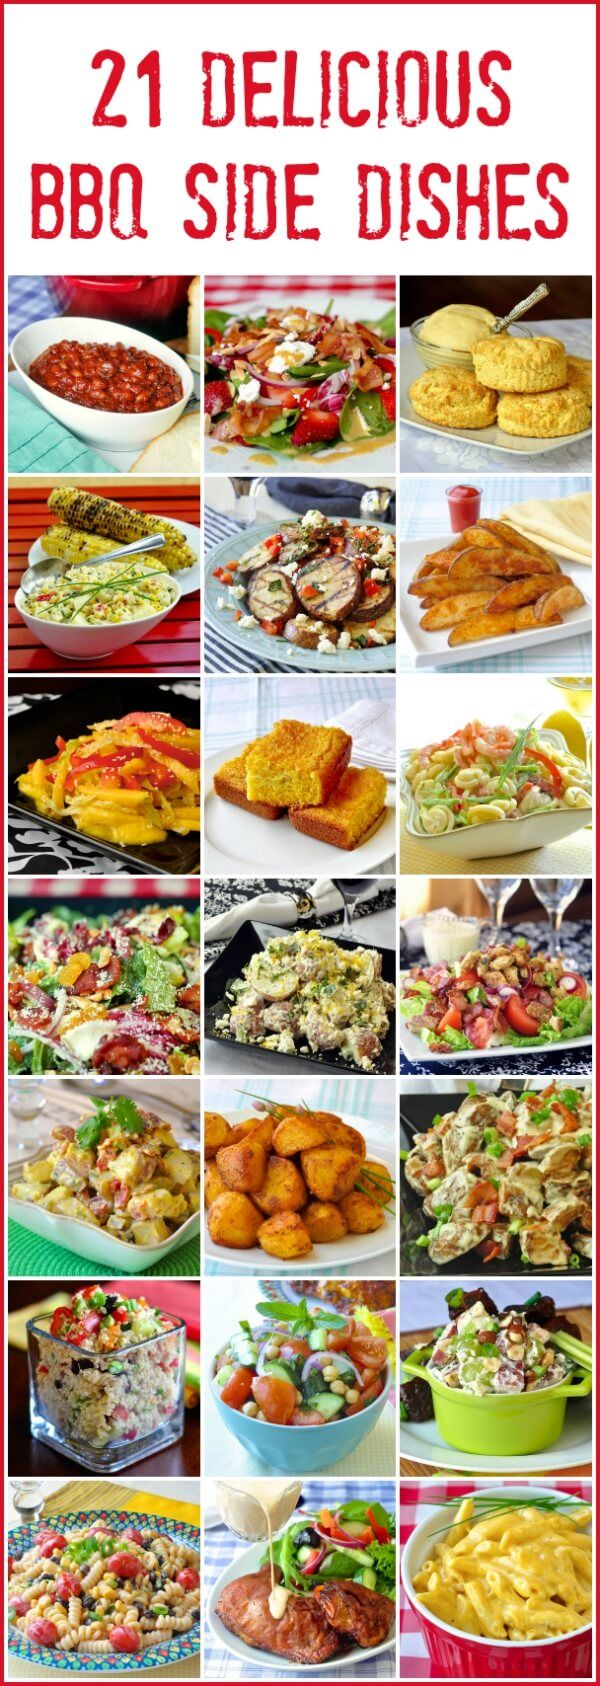 Backyard Bbq Menu Ideas article image 20 Best Barbecue Side Dishes So Much To Choose From